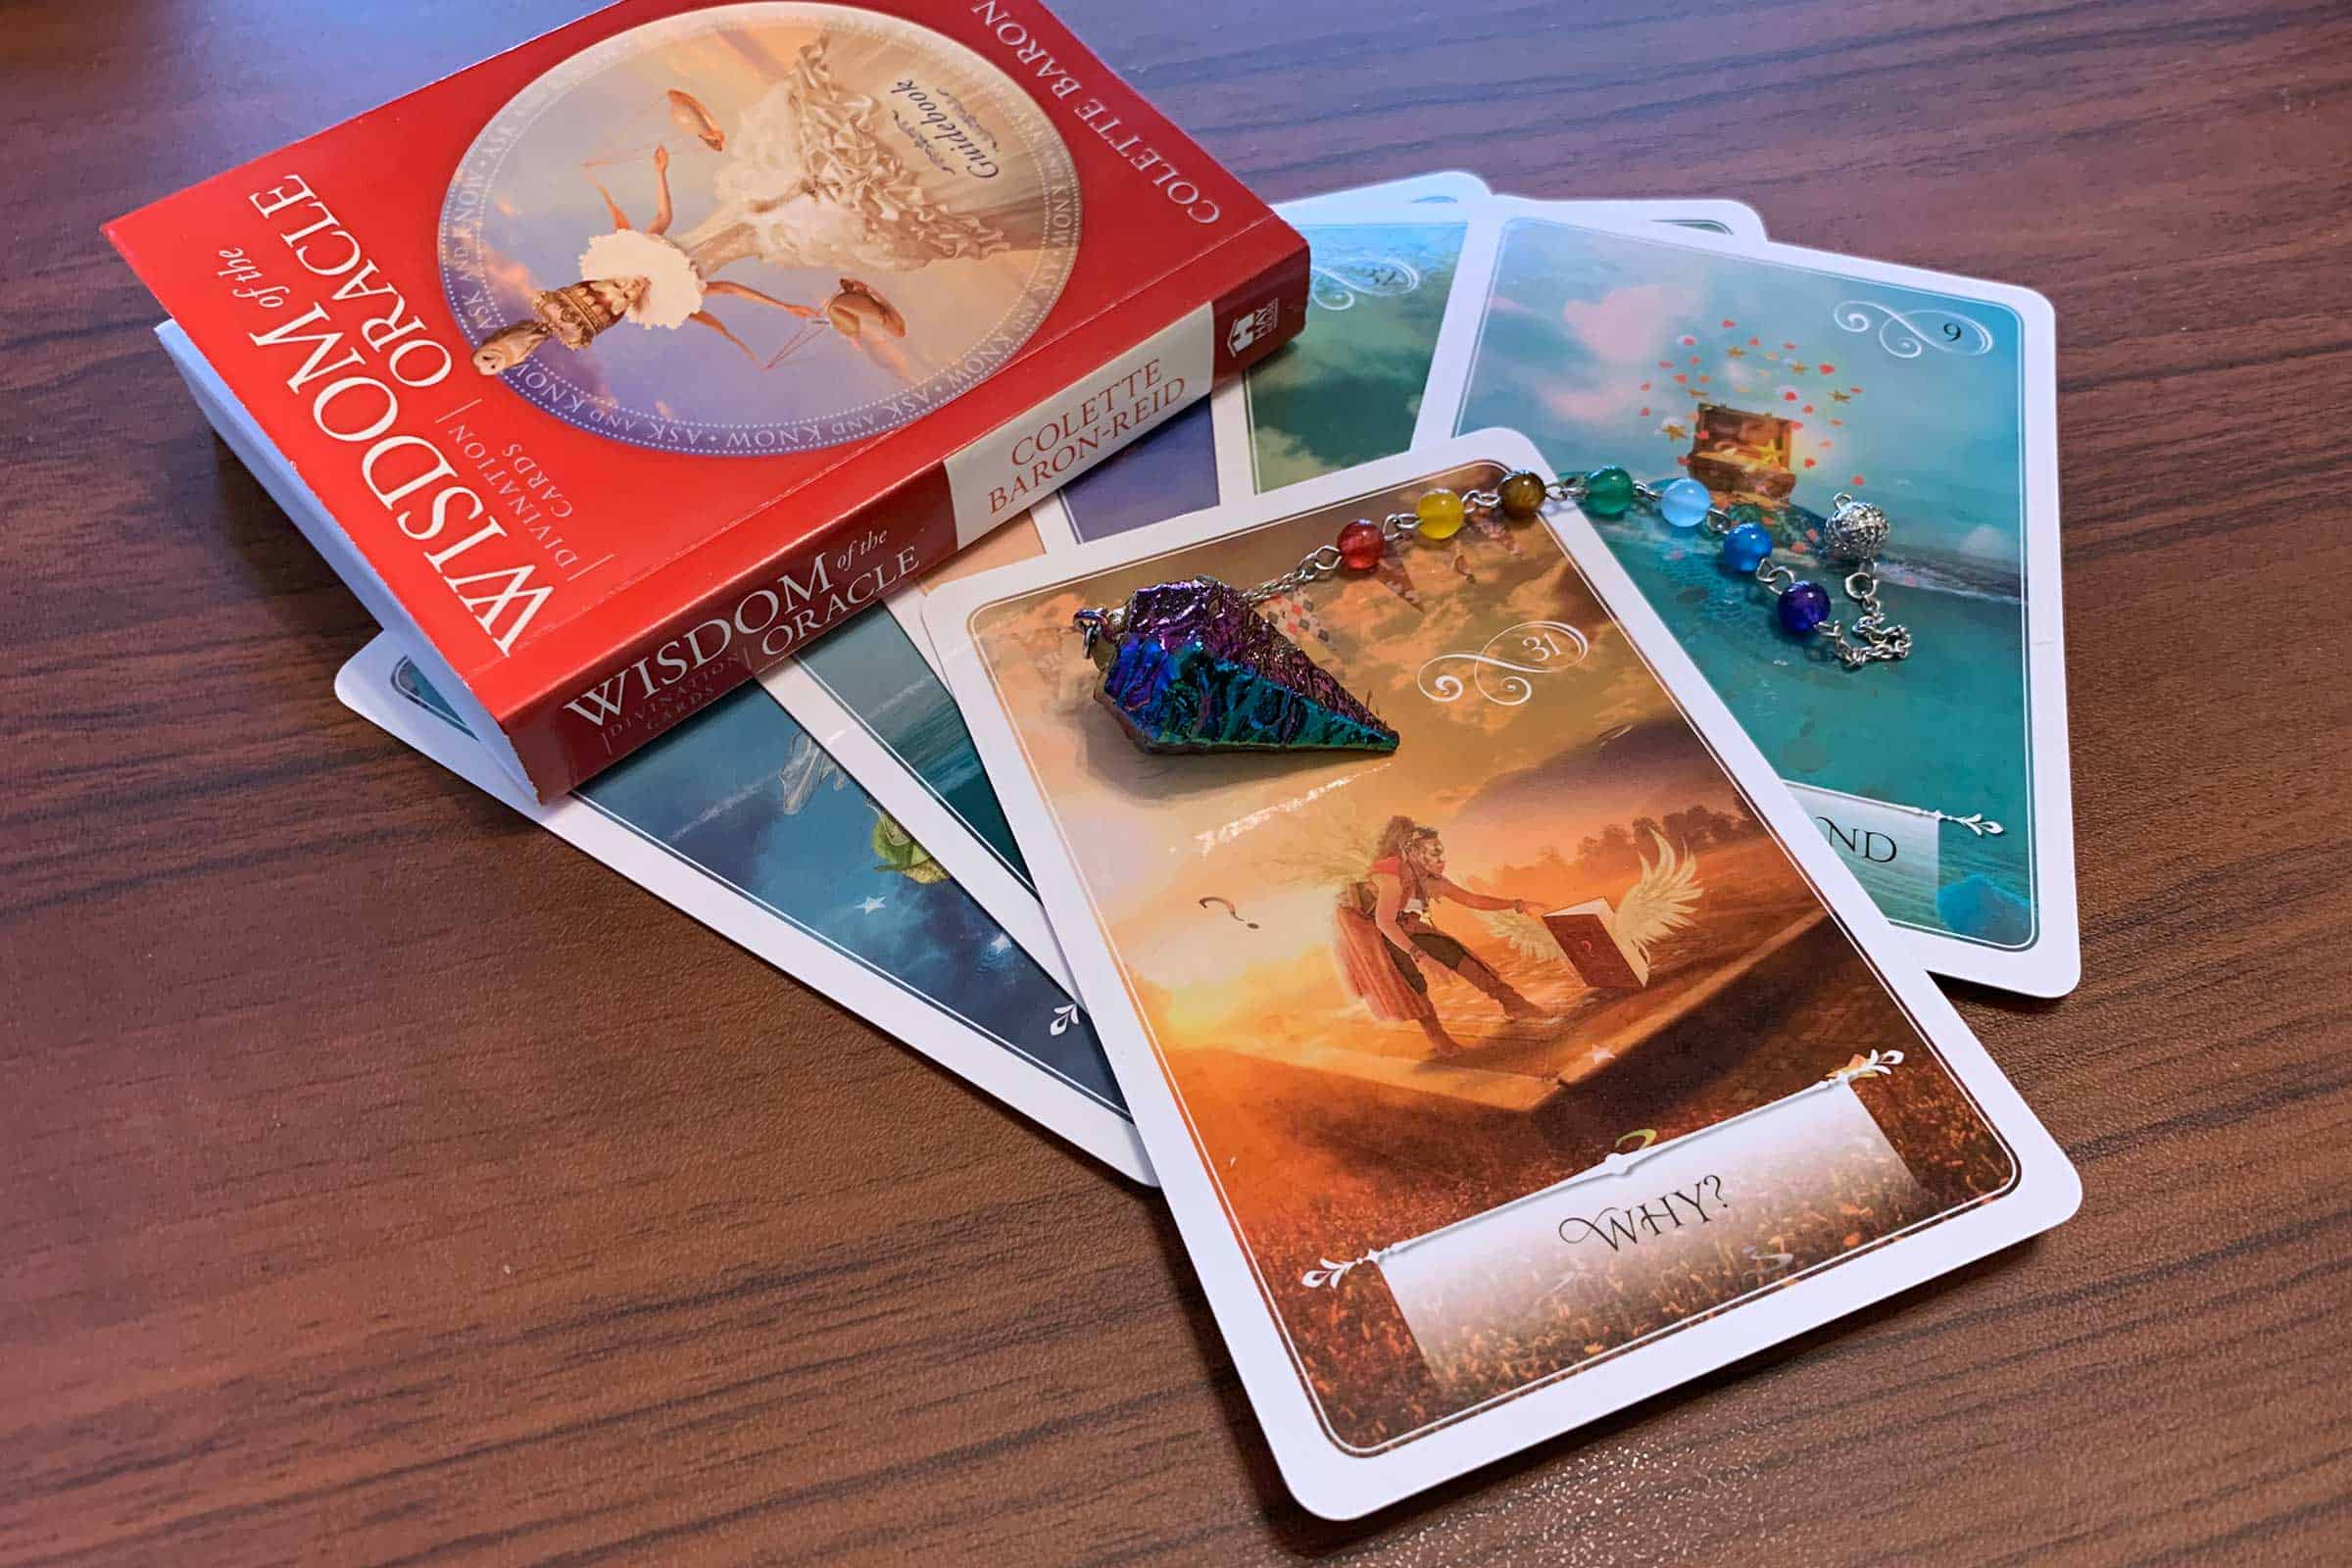 How your why impacts your coaching business brand. (Shown: Wisdom of the Oracle deck by Colette Baron-Reid)